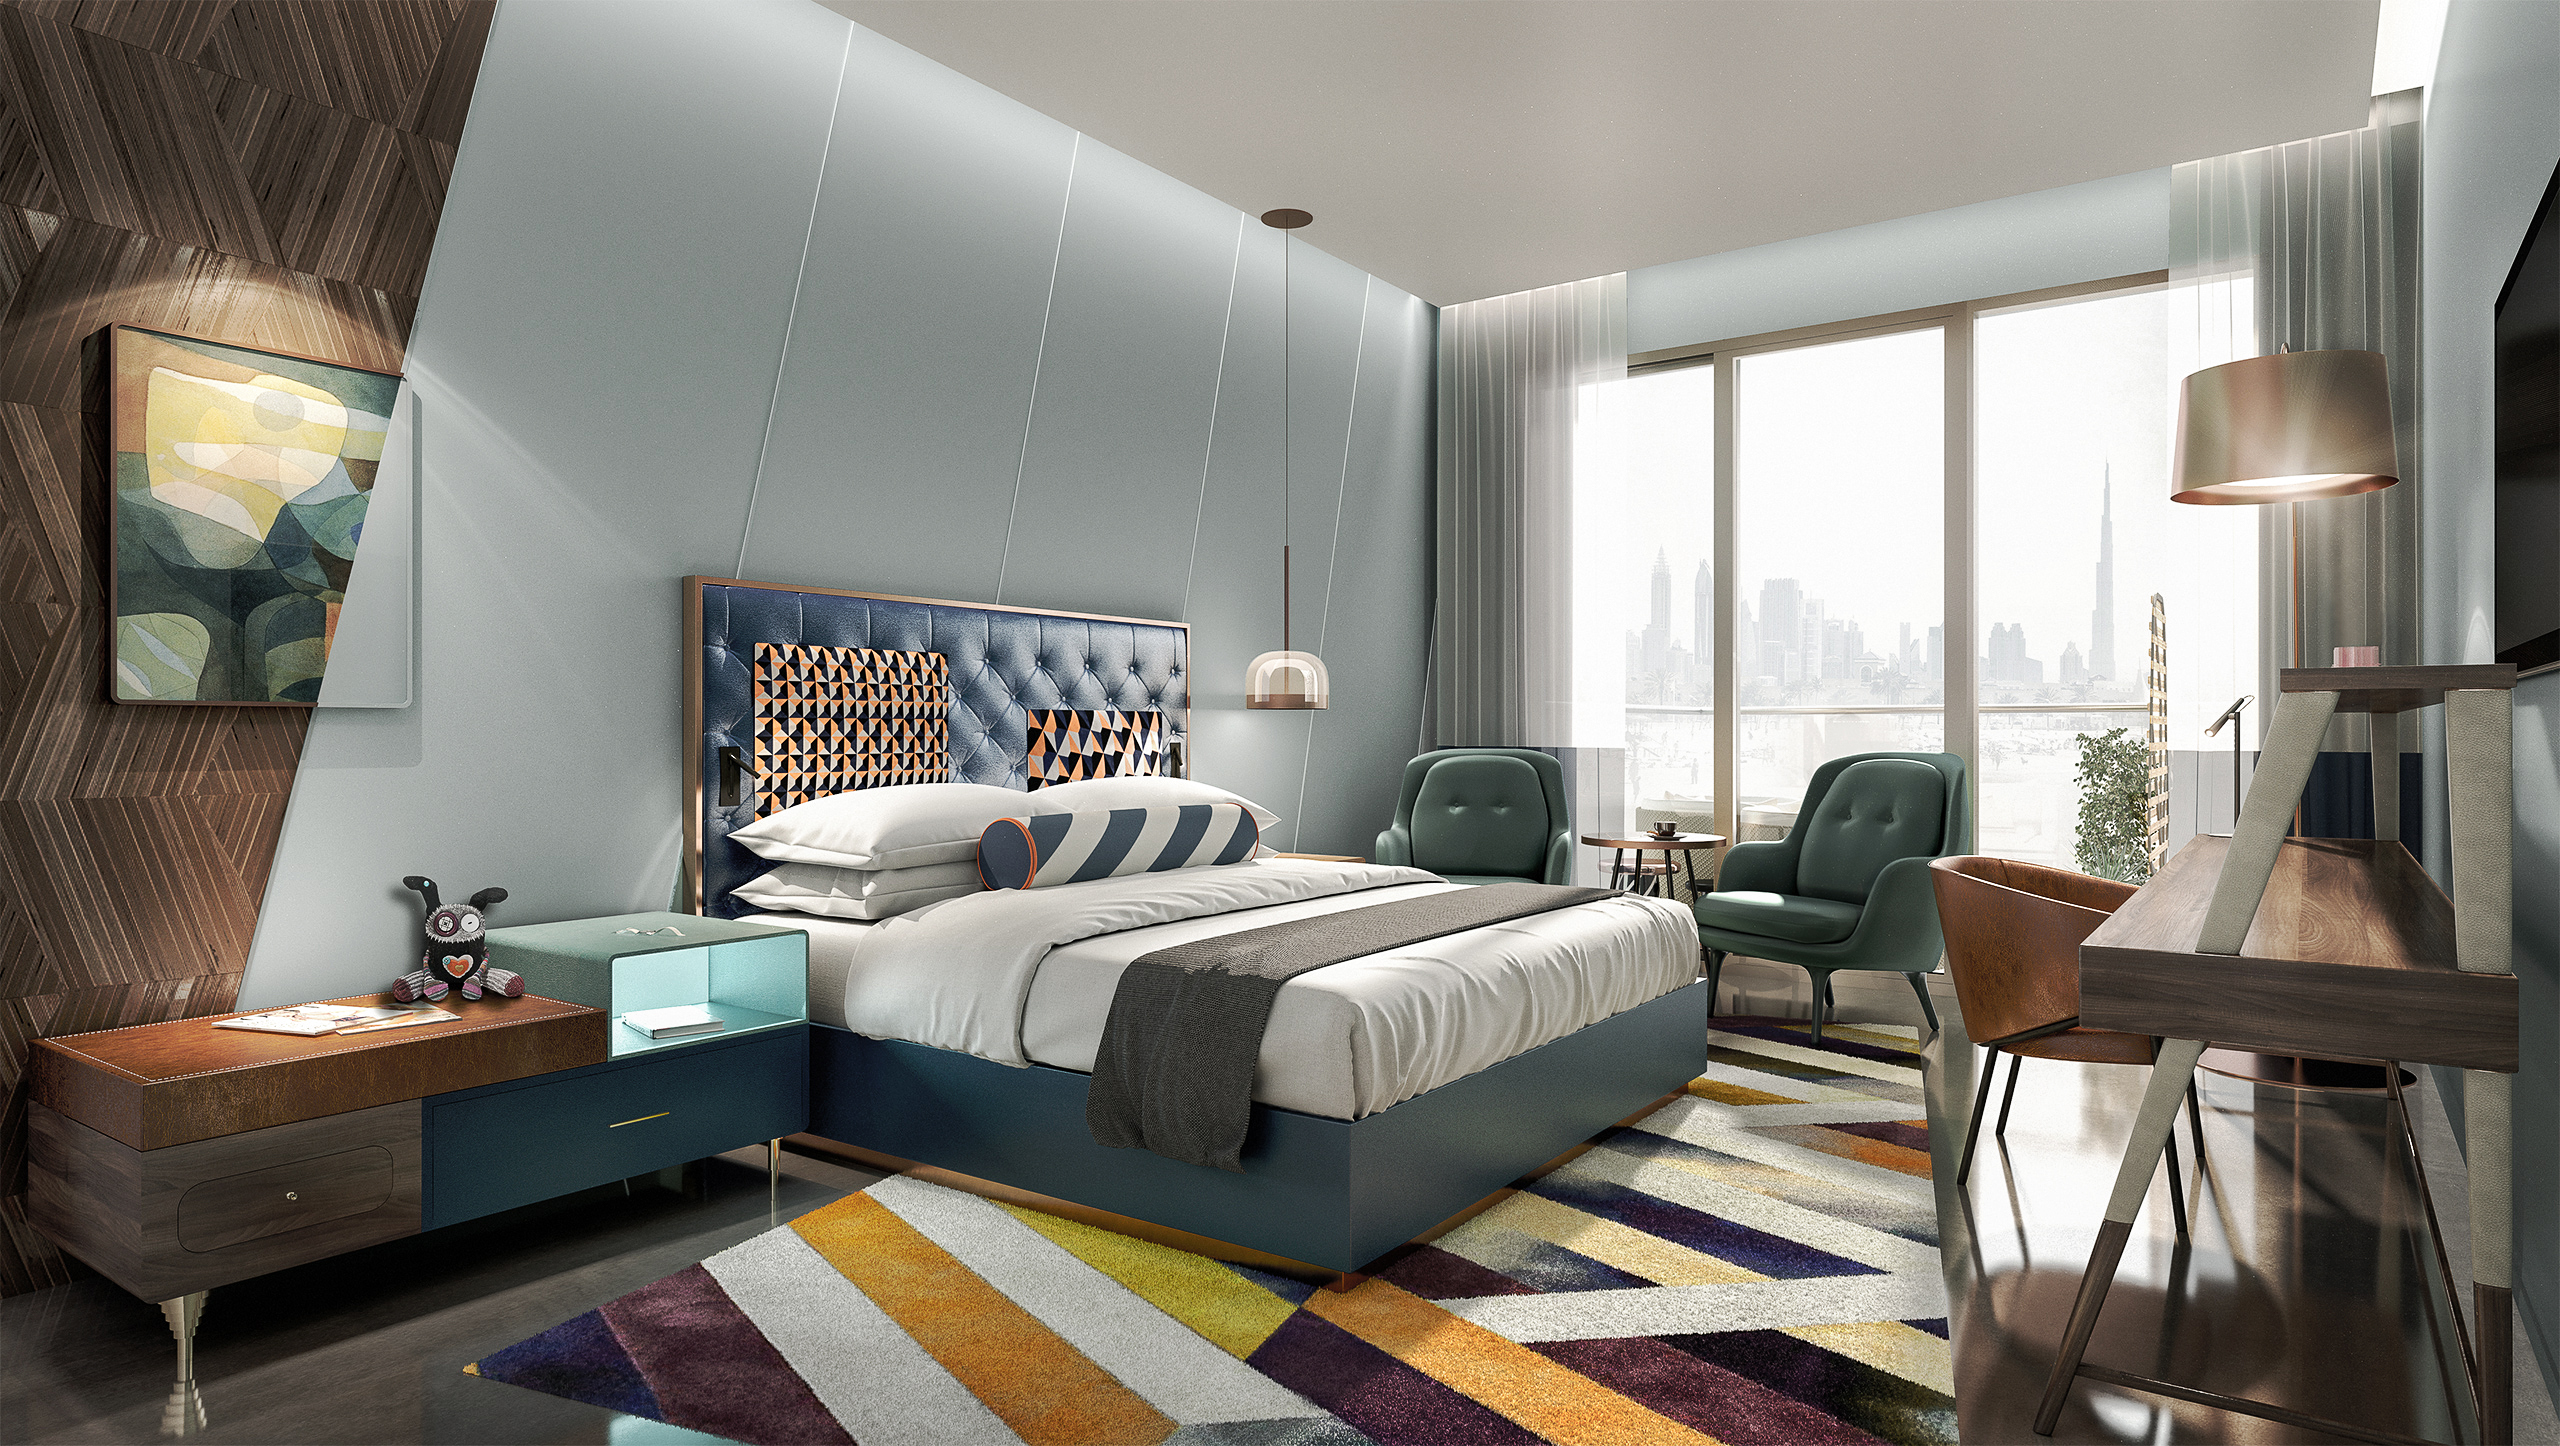 Hotel Andaz in Dubai Rooms